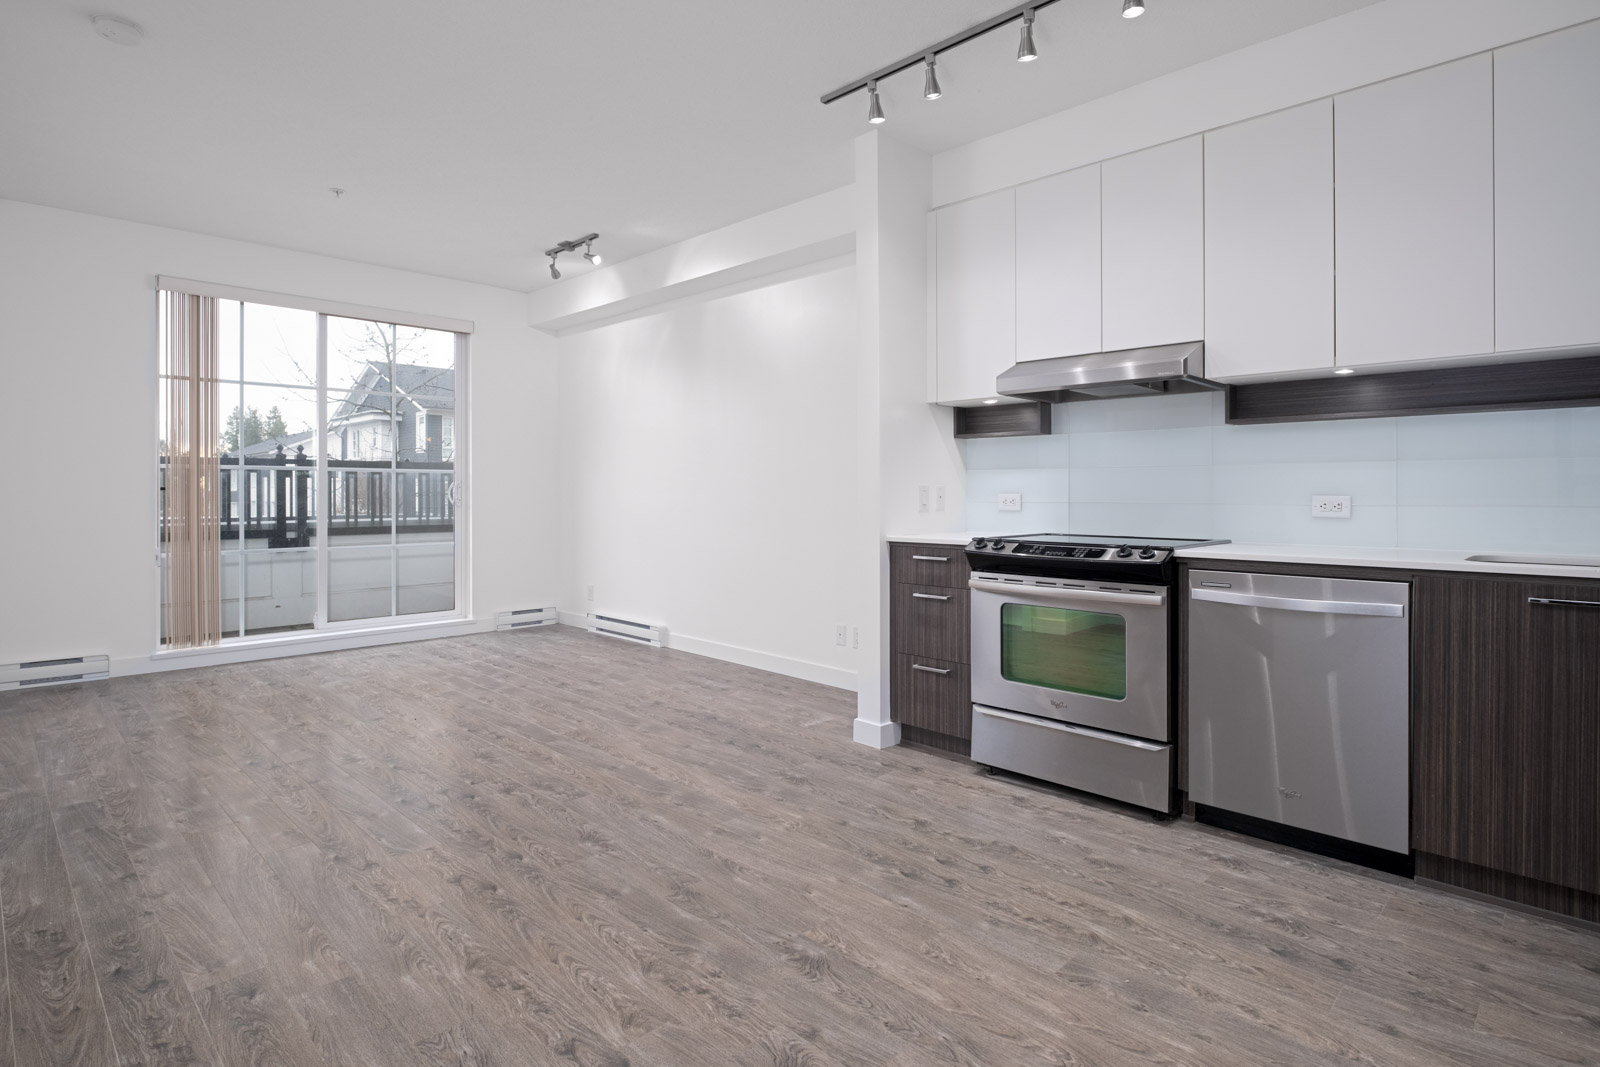 kitchen in rental condo at Foster East in the Lougheed Town Centre neighbourhood of Coquitlam